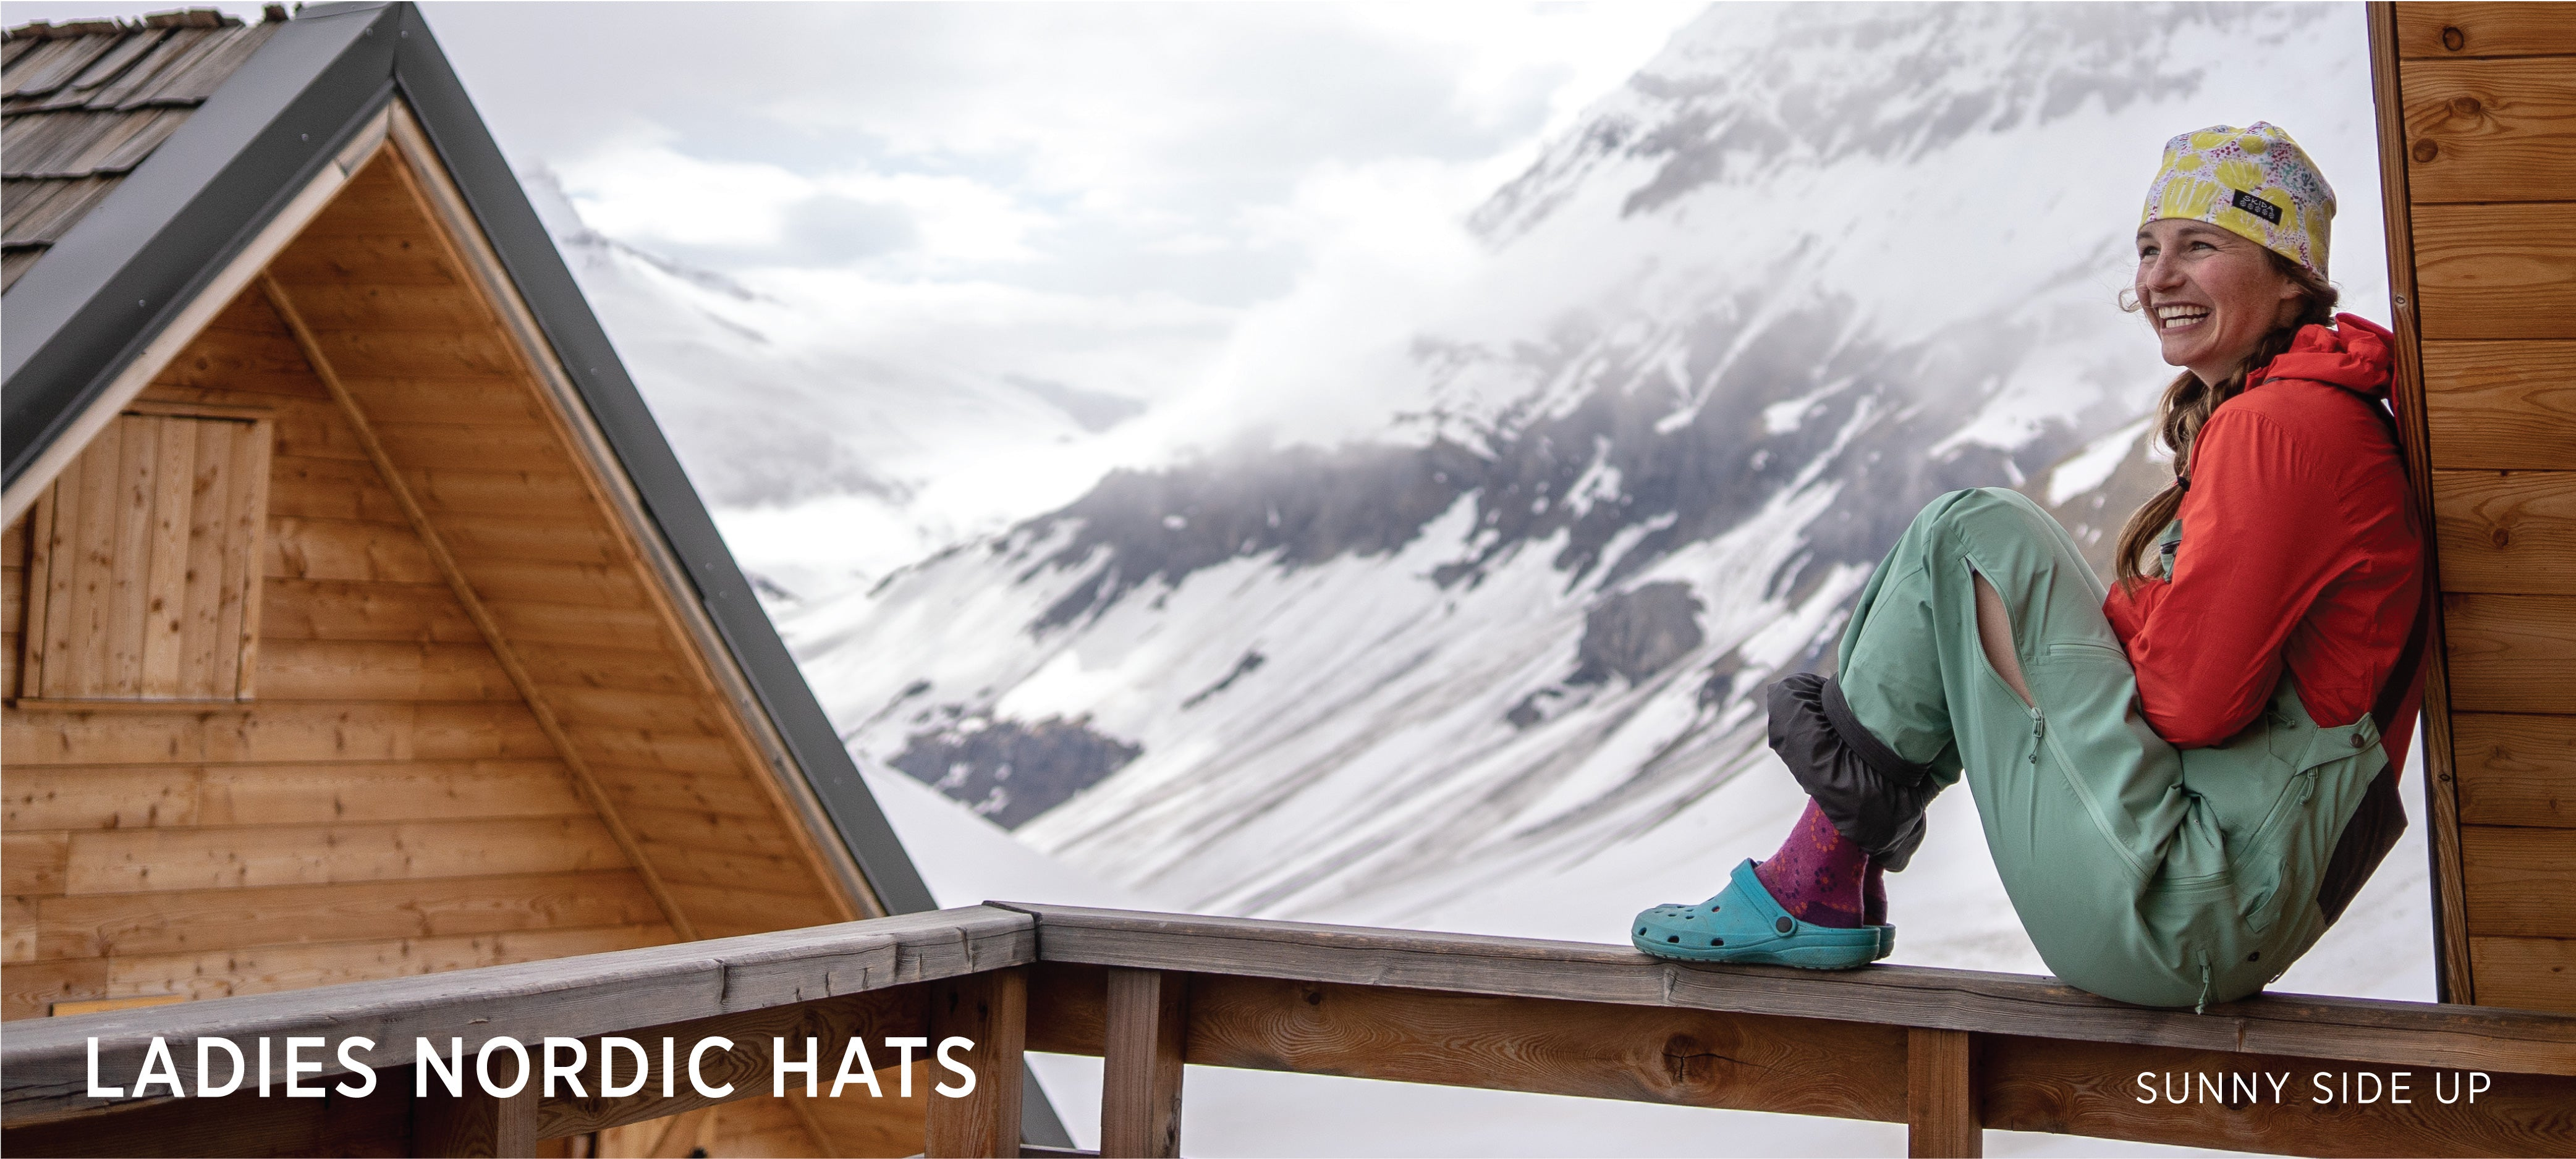 Shop Ladies Nordic Hats!